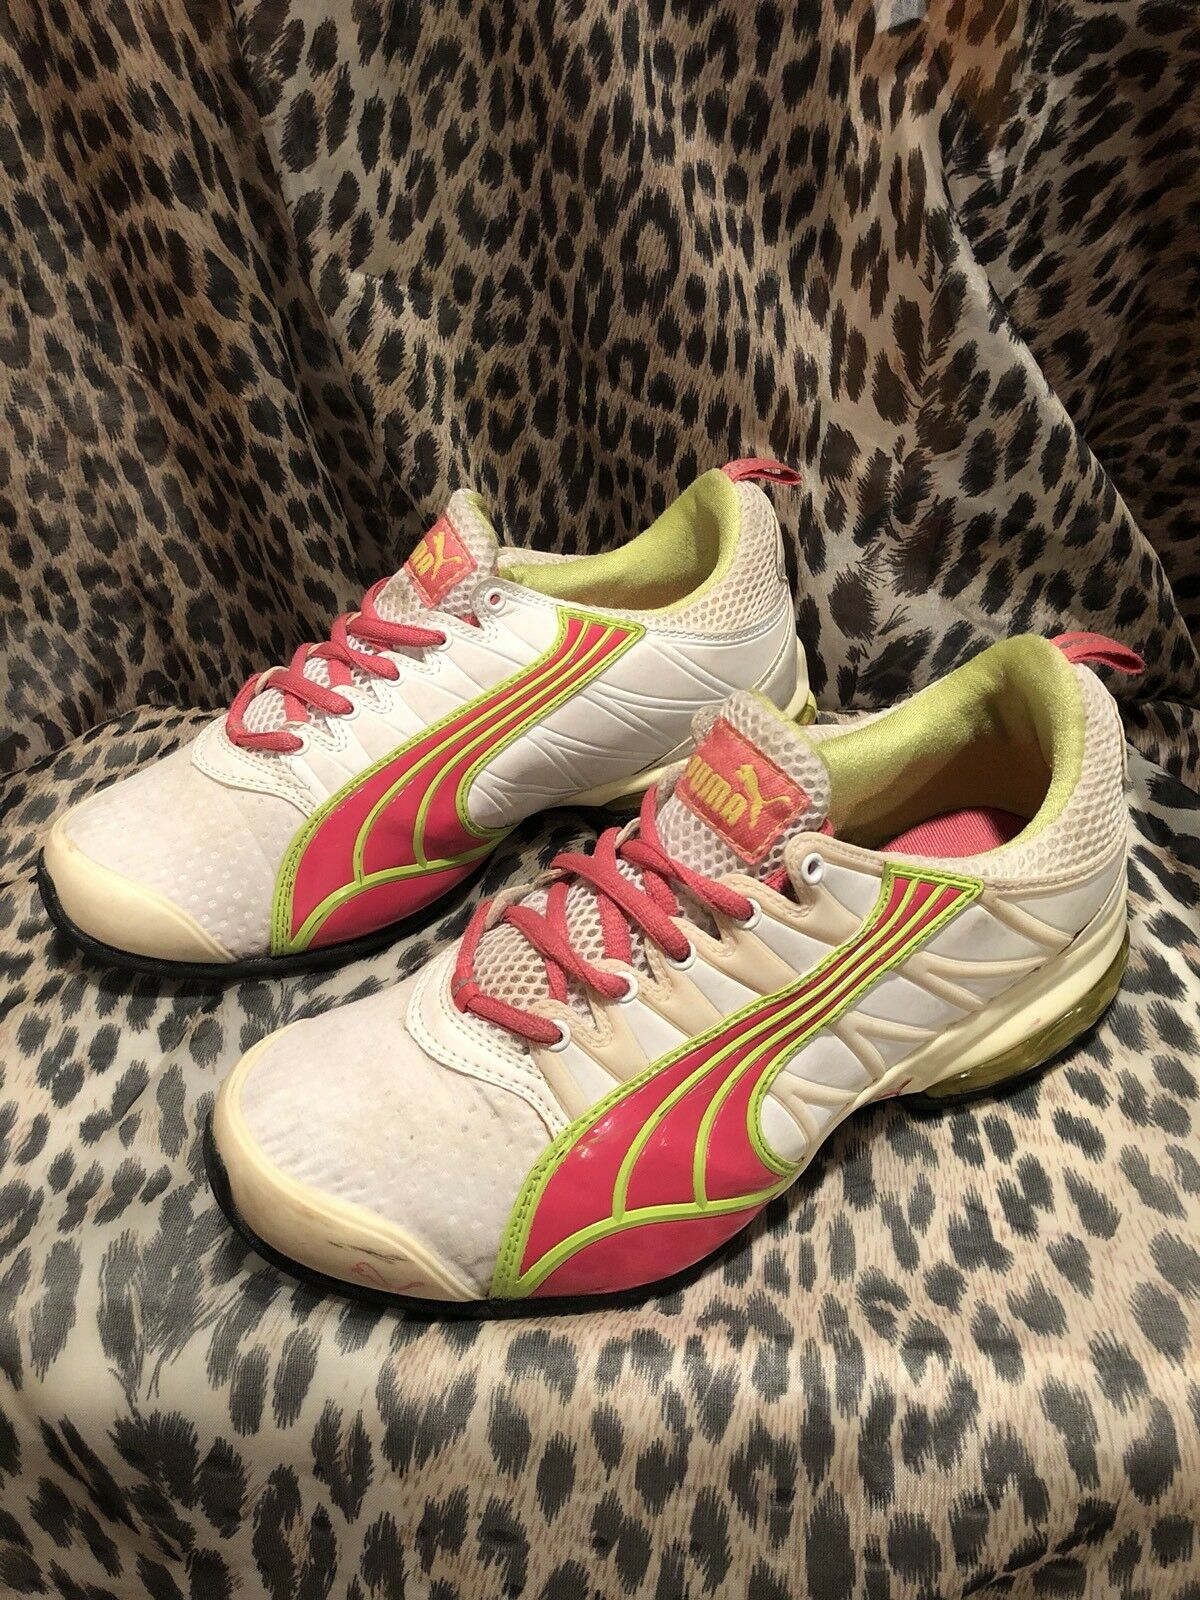 Puma Shoes Voltaic 2 White/Pink/neon Green Sneakers Womens 8 Running Special limited time